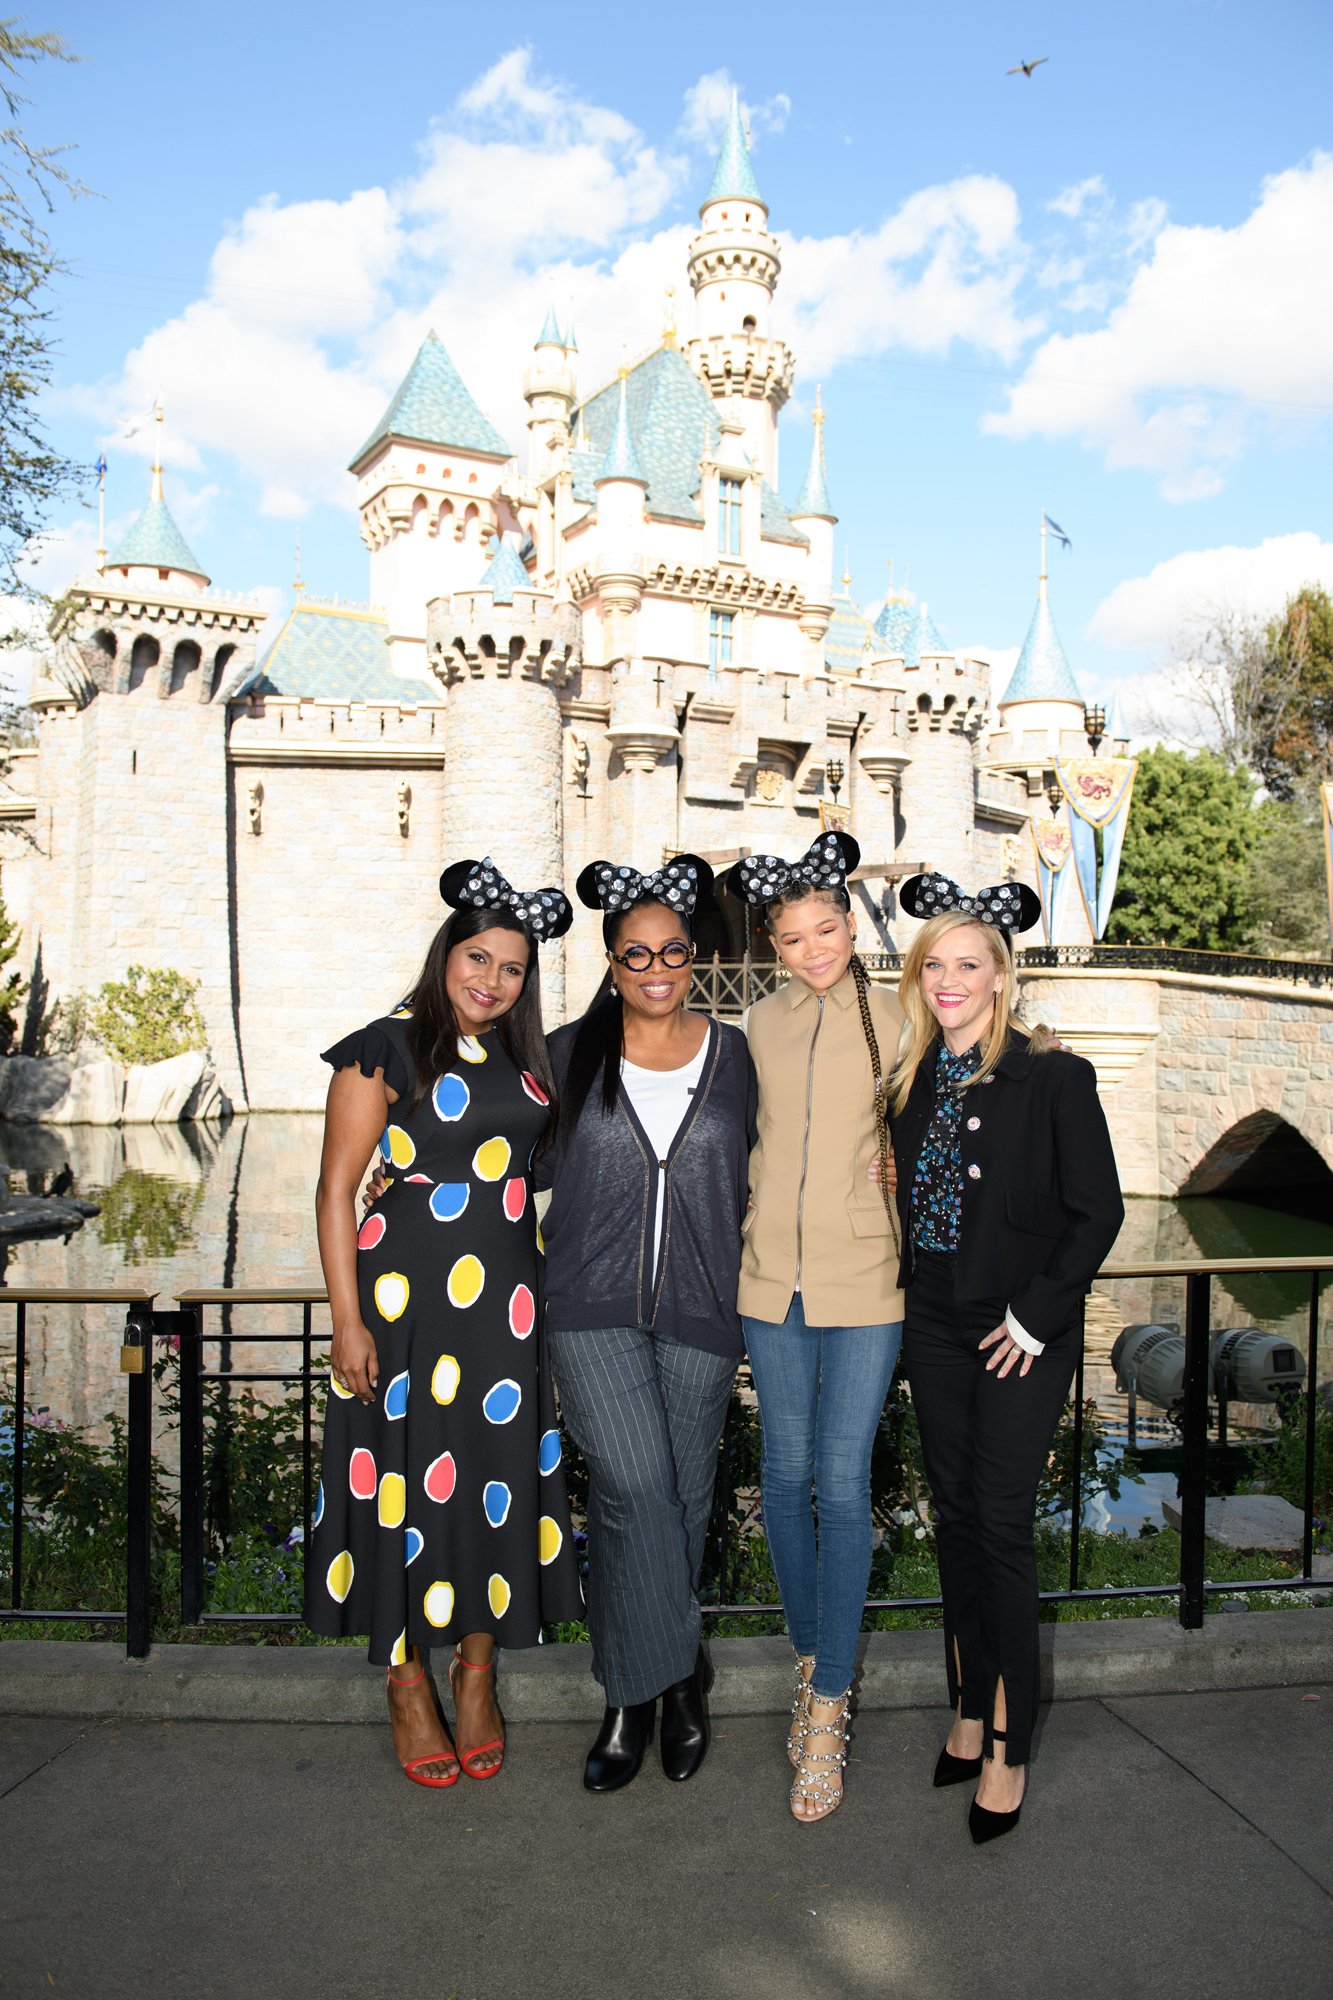 """The Stars of Disney's """"A Wrinkle in Time"""" Surprise Fans at Disneyland"""